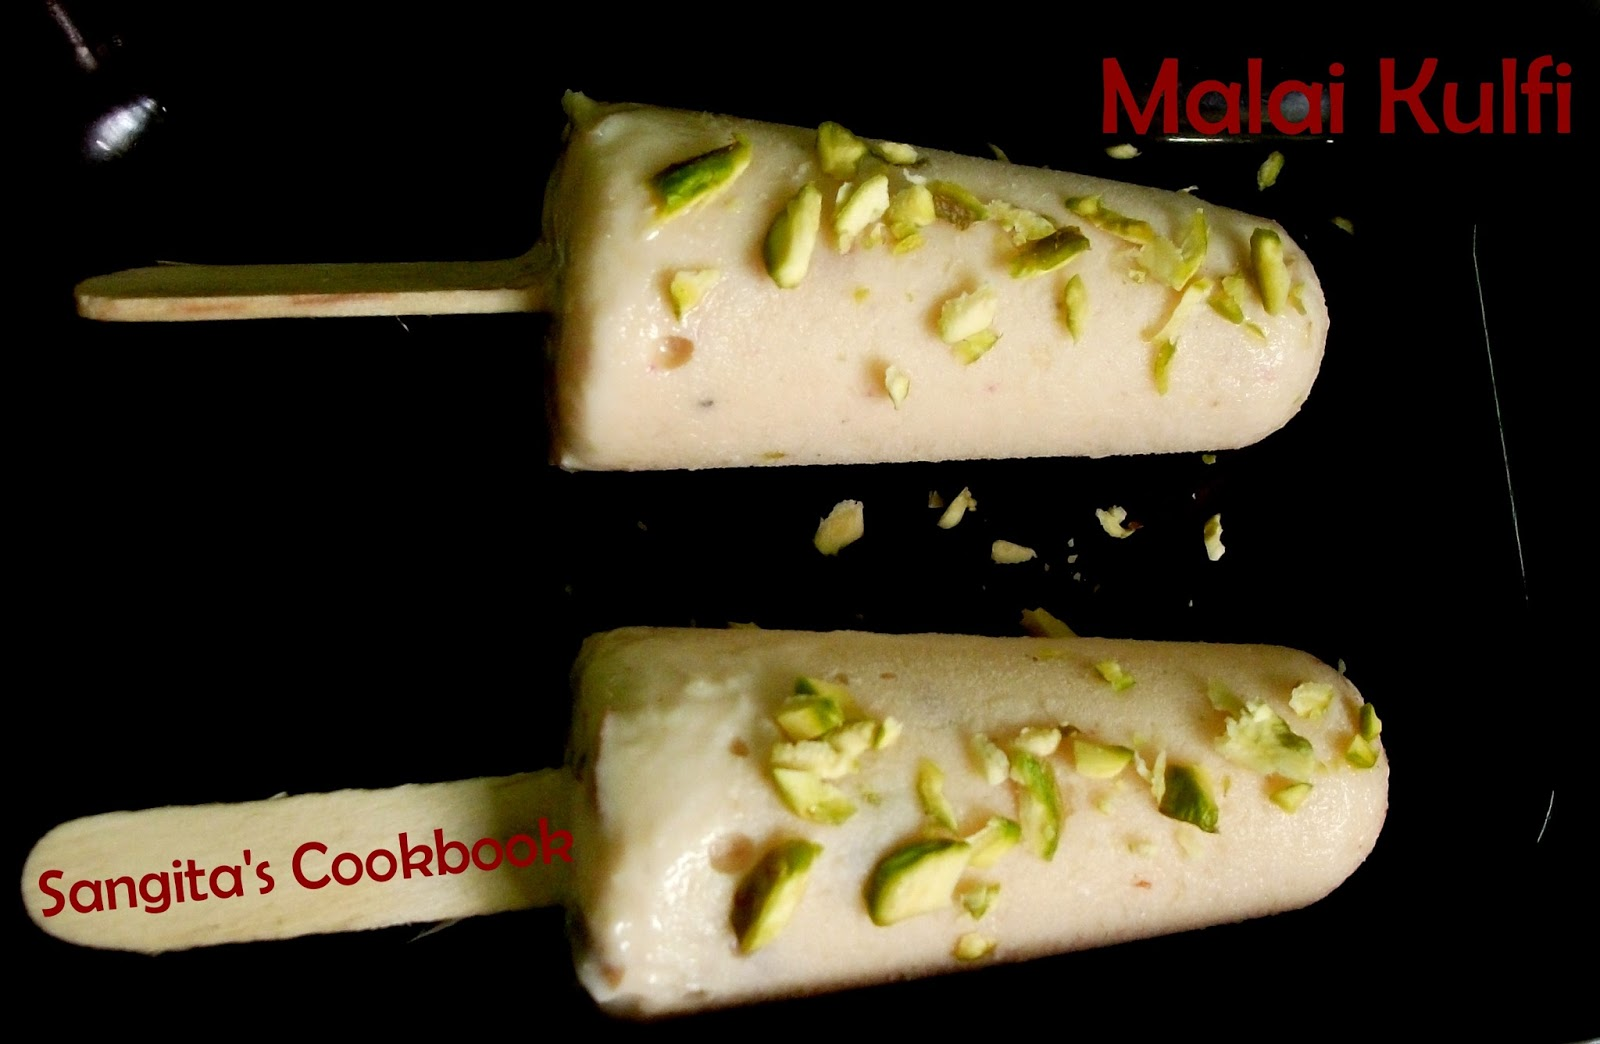 Sangitas cookbook traditional malai kulfi recipe it is popularly found at beaches in india here i will bring you the original recipe of malai kulfi in this article forumfinder Gallery